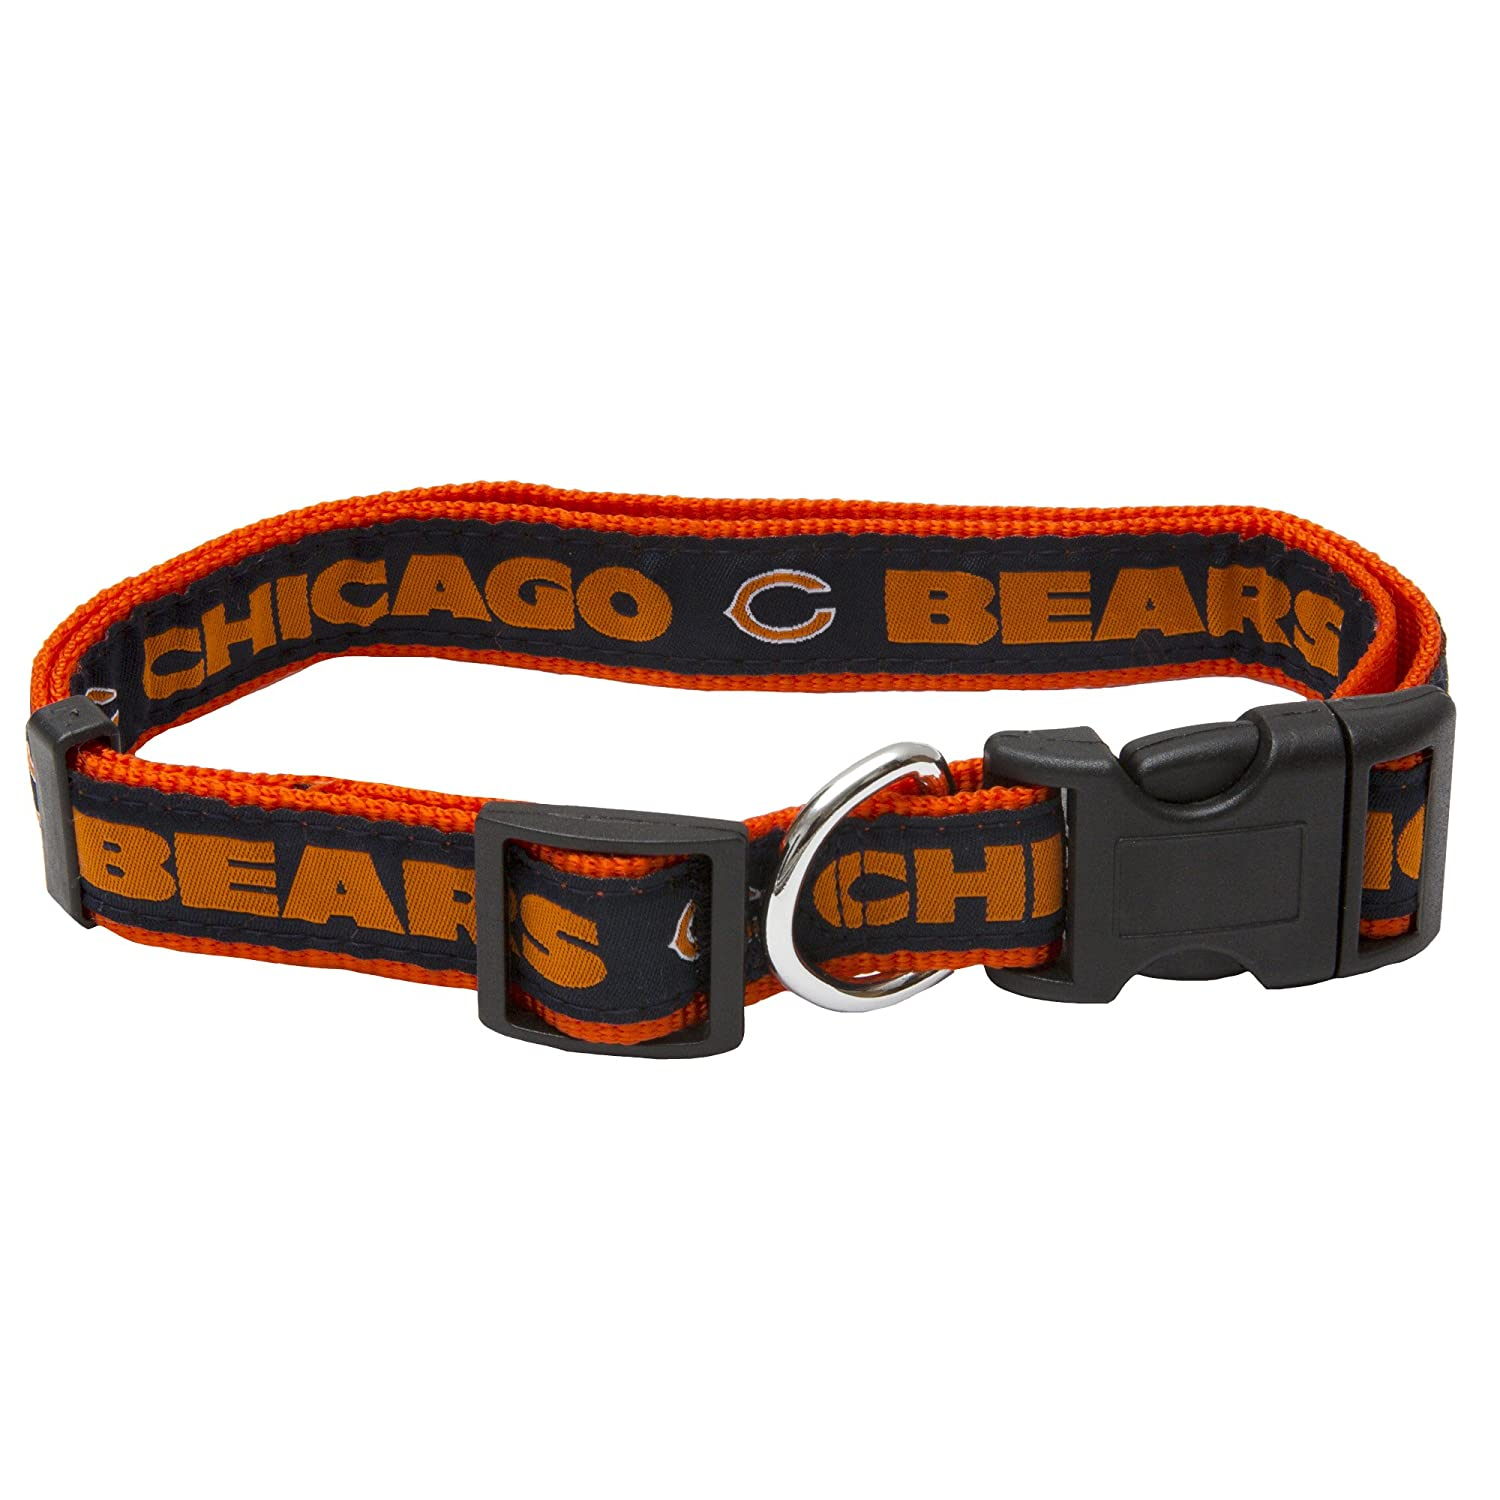 Pets First NFL Dog Collar  32 NFL Teams Available in 4 Sizes  Heavy-Duty,  Strong & Durable NFL PET Collar  Football Gear for The Sporty Pup